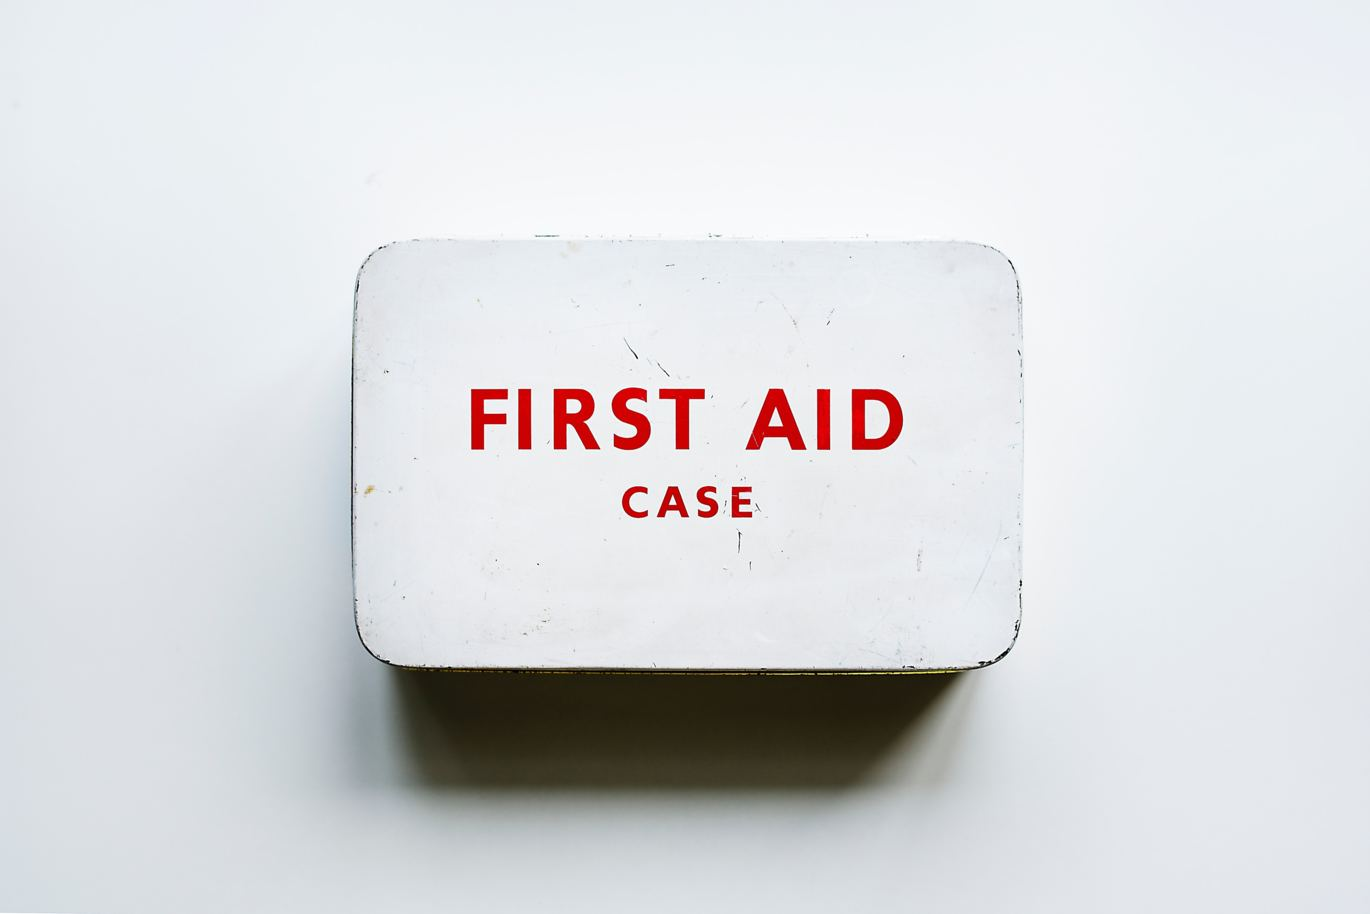 first aid case on a wall